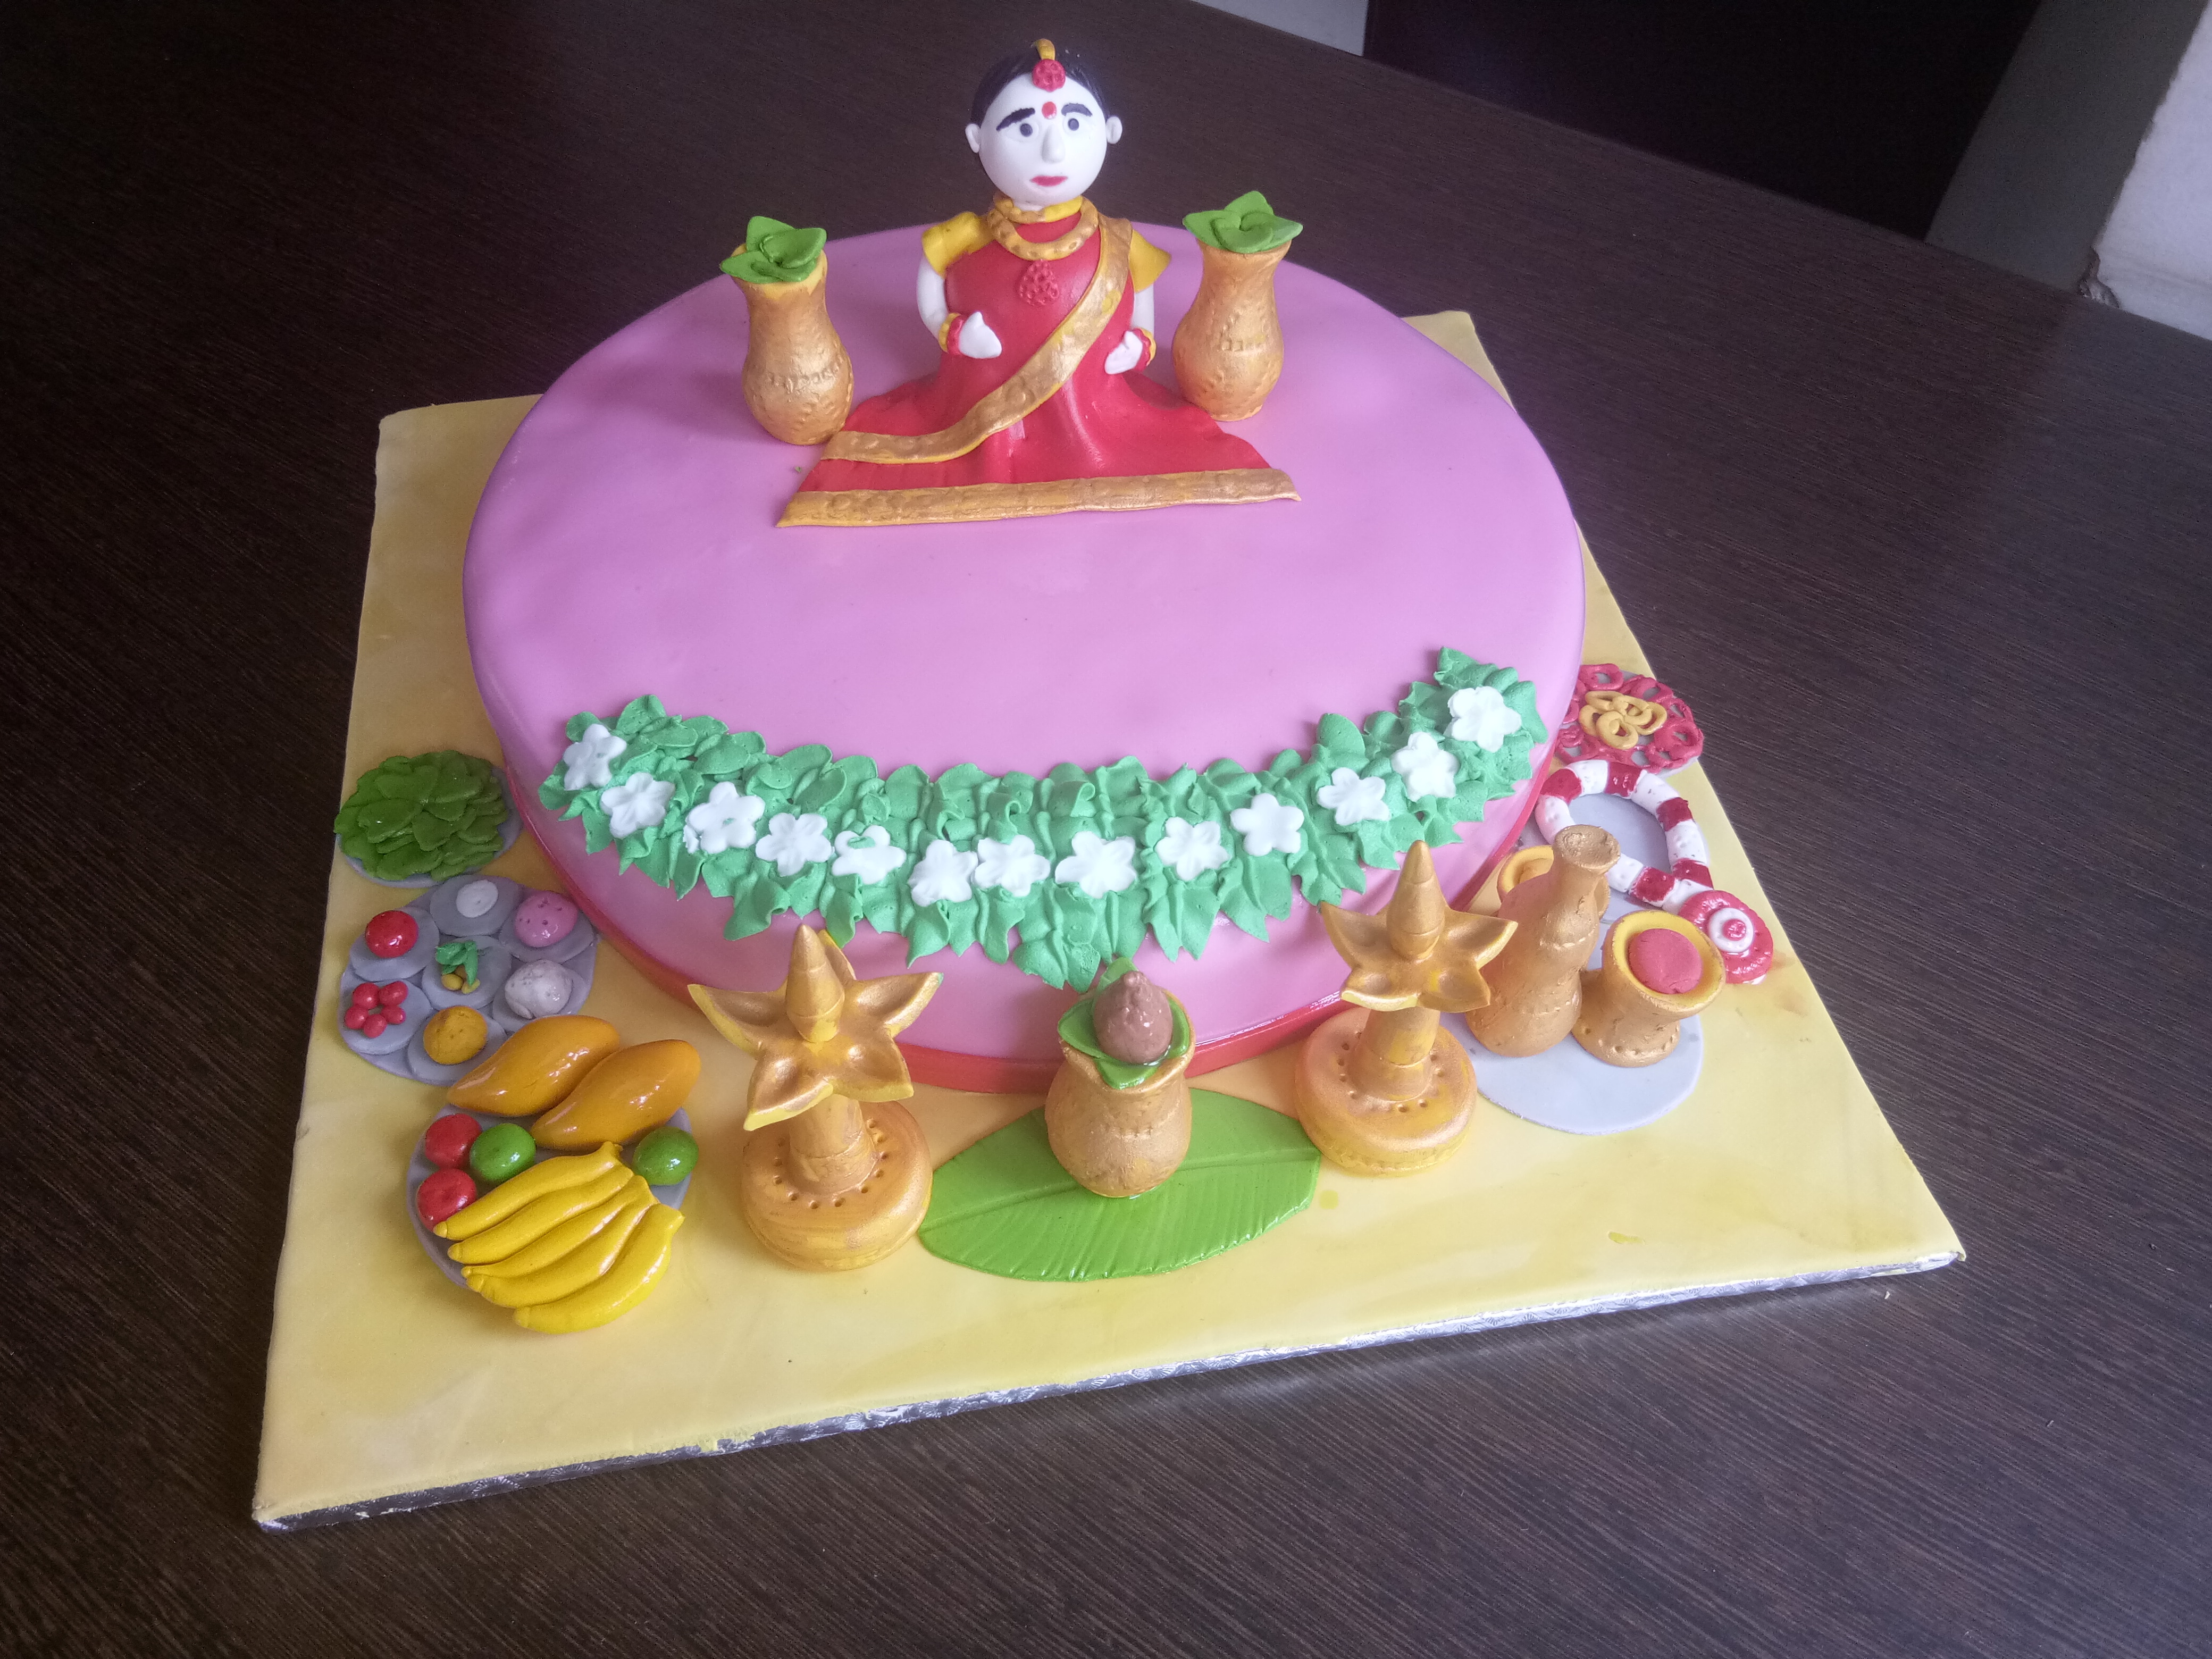 Baby Shower cake - Indian style from Sweet Cherry. Order online for home delivery of eggless cakes anywhere in bangalore.  We specialise in custom cakes for birthday baby shower, engagement, wedding, parties or any special events